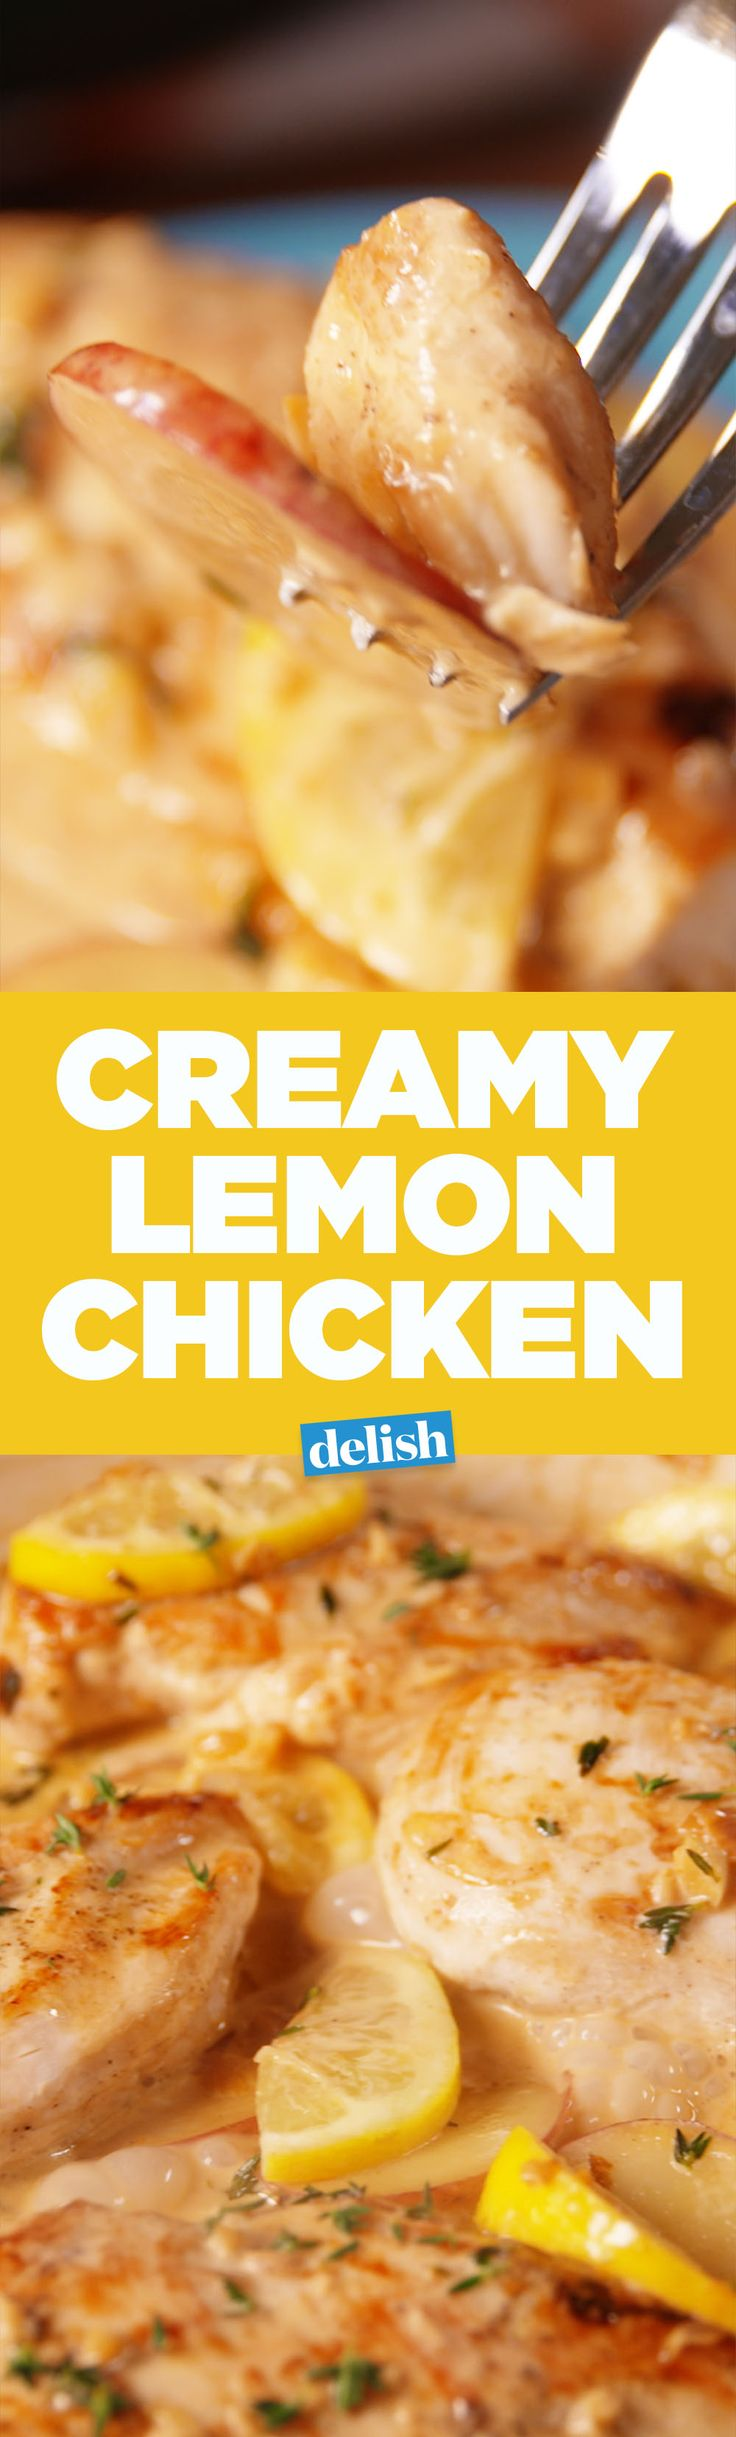 The sauce in this Creamy Lemon Chicken is restaurant level. Get the recipe on Delish.com.